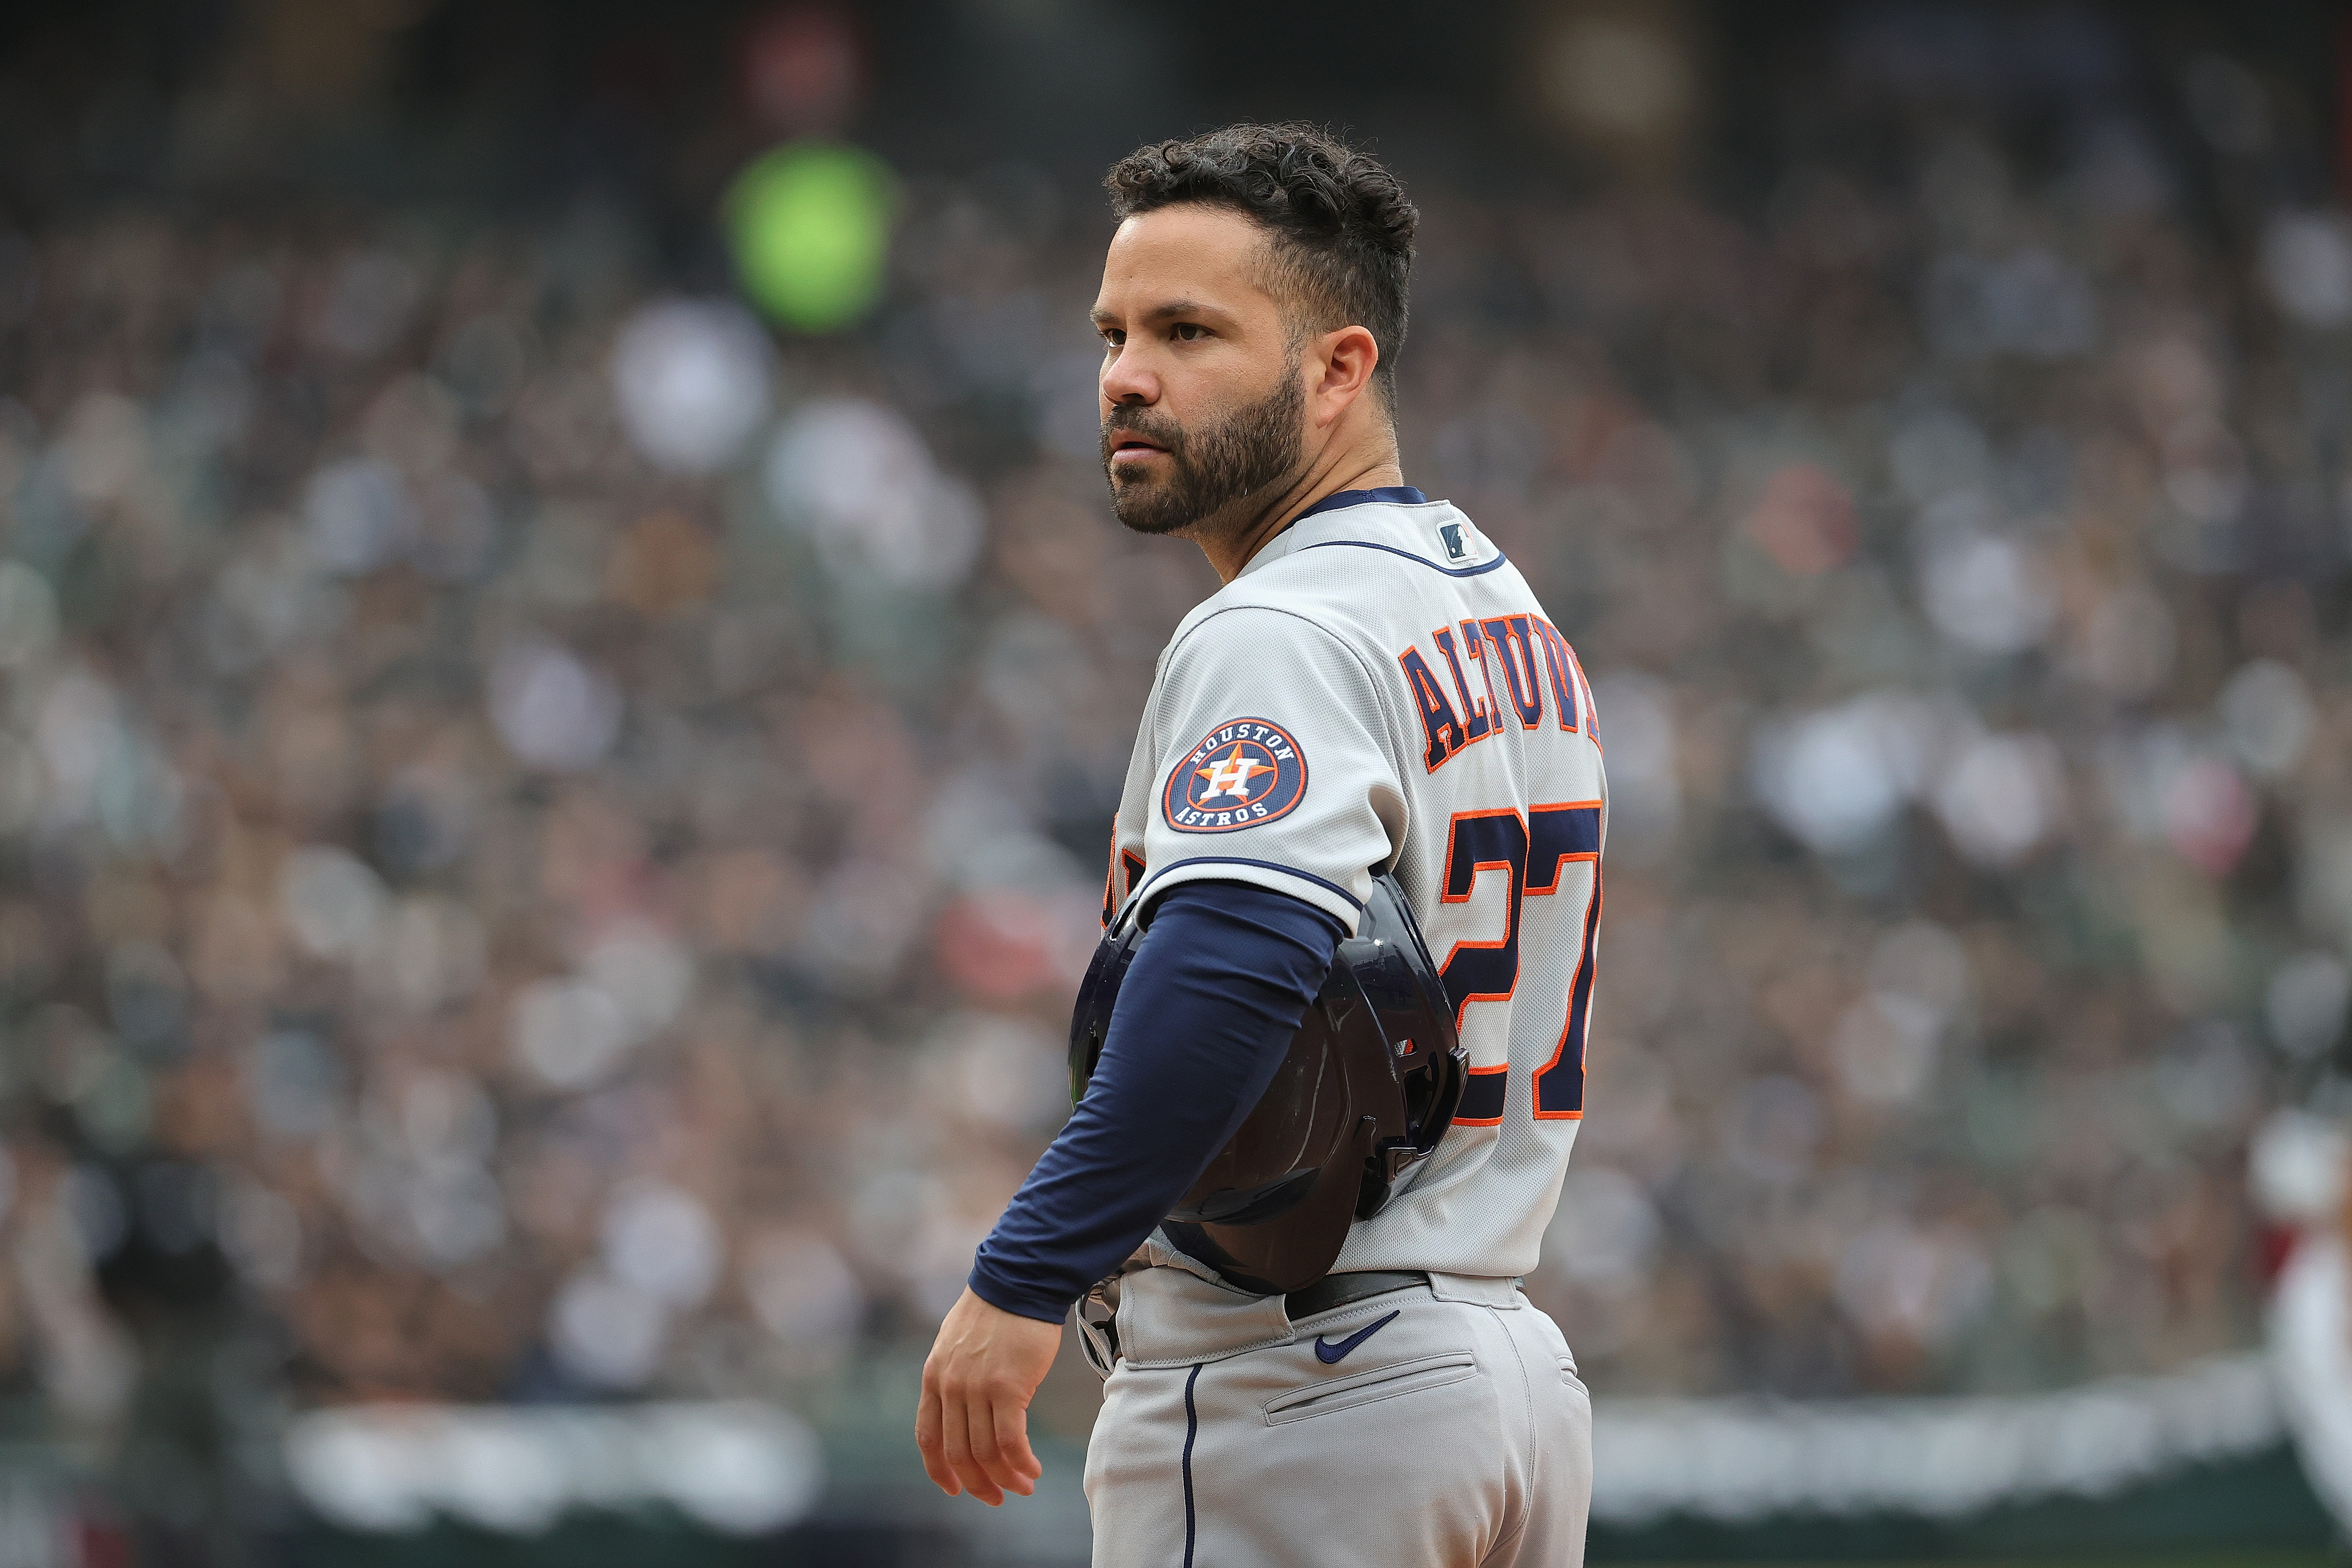 Jose Altuve #27 of the Houston Astros waits at first base during a pitching change by the Chicago White Sox at Guaranteed Rate Field on October 12, 2021 in Chicago, Illinois. The Astros defeated the White Sox 10-1.